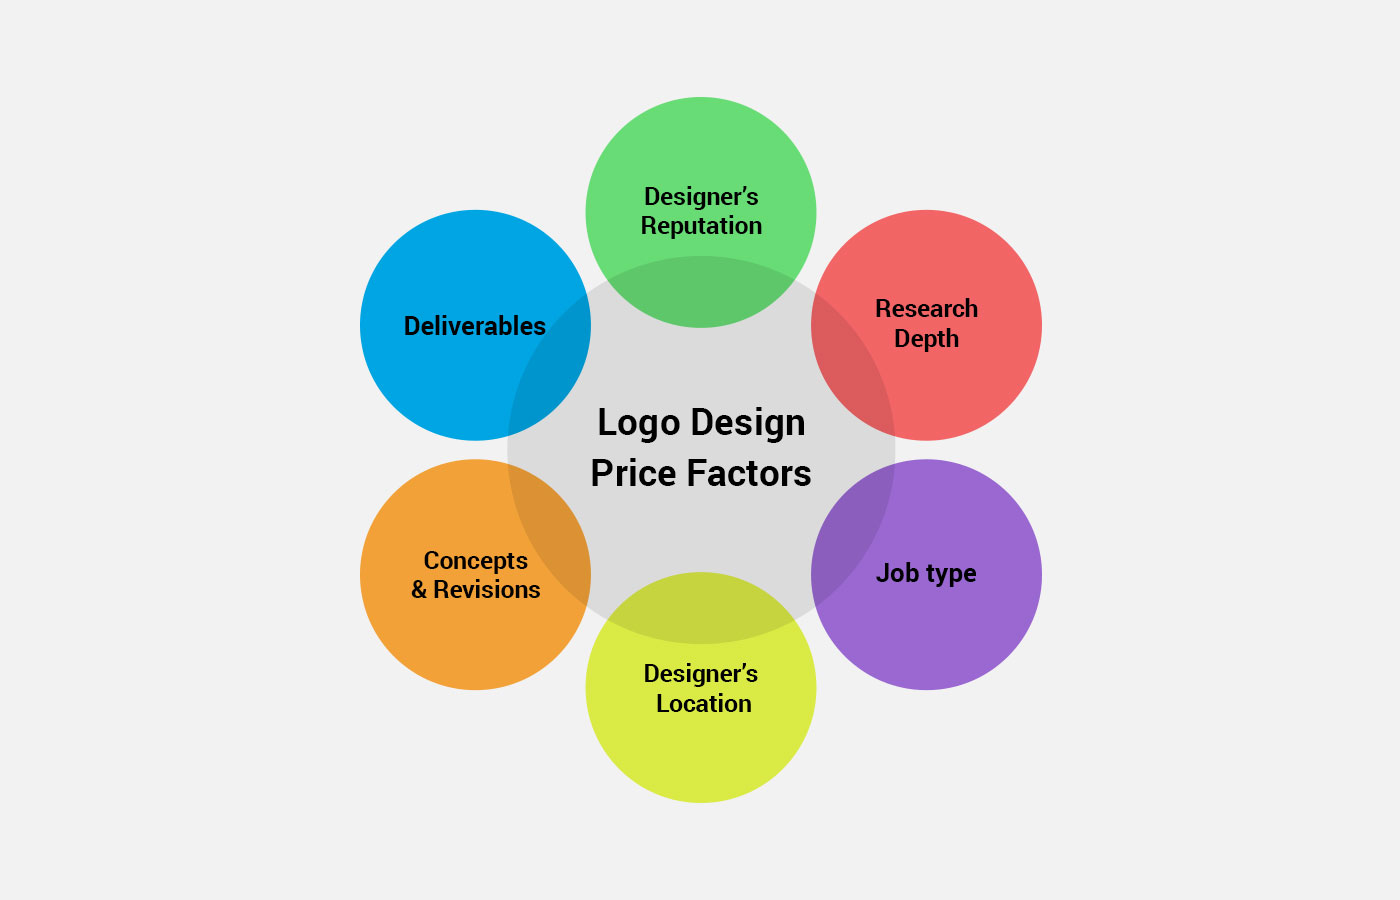 Logo Design Price Factors